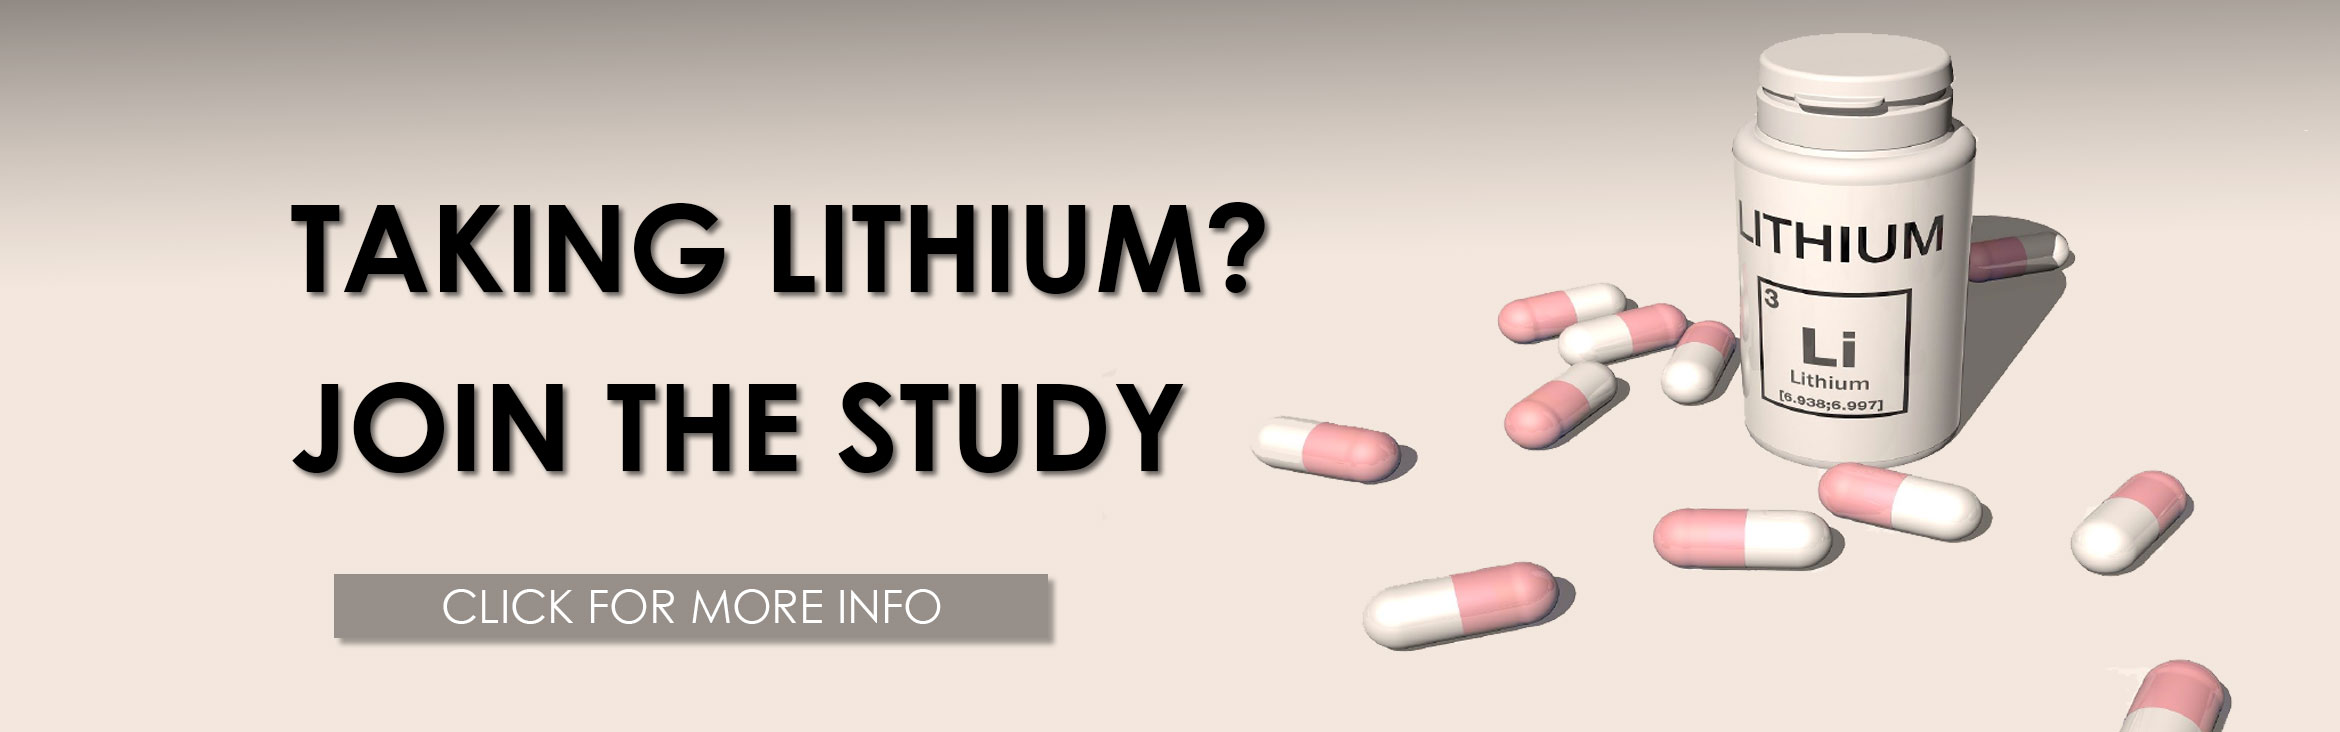 Taking Lithium? Join the study, Click for more info